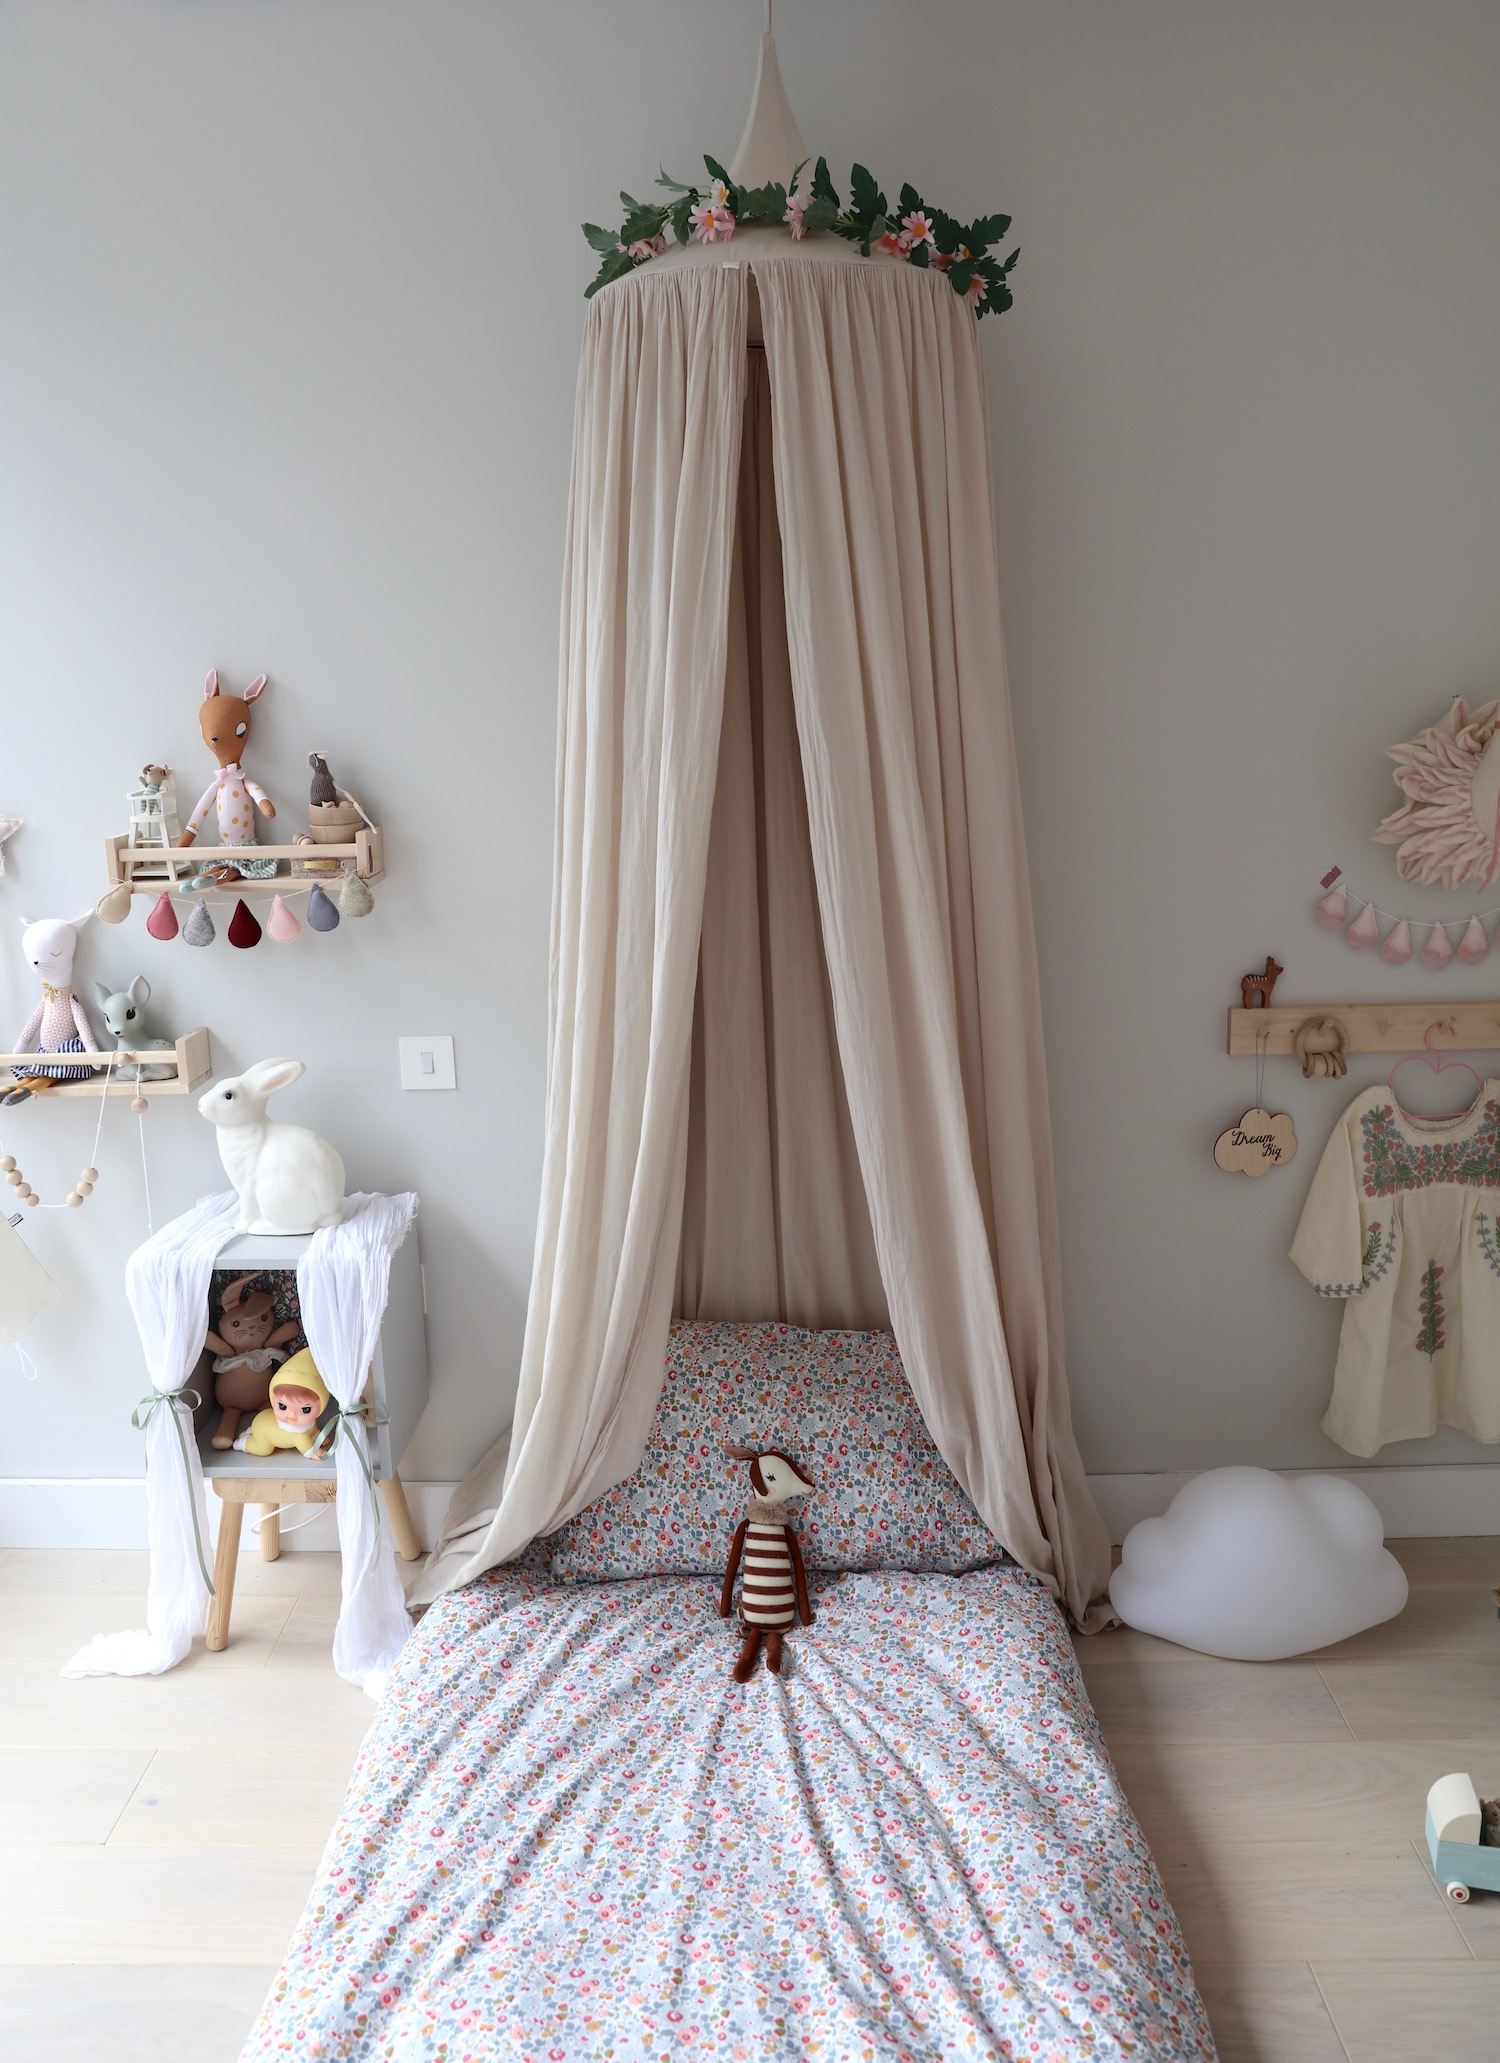 Mollly_meg_kids_interior_bedroom_canopy_numero_74